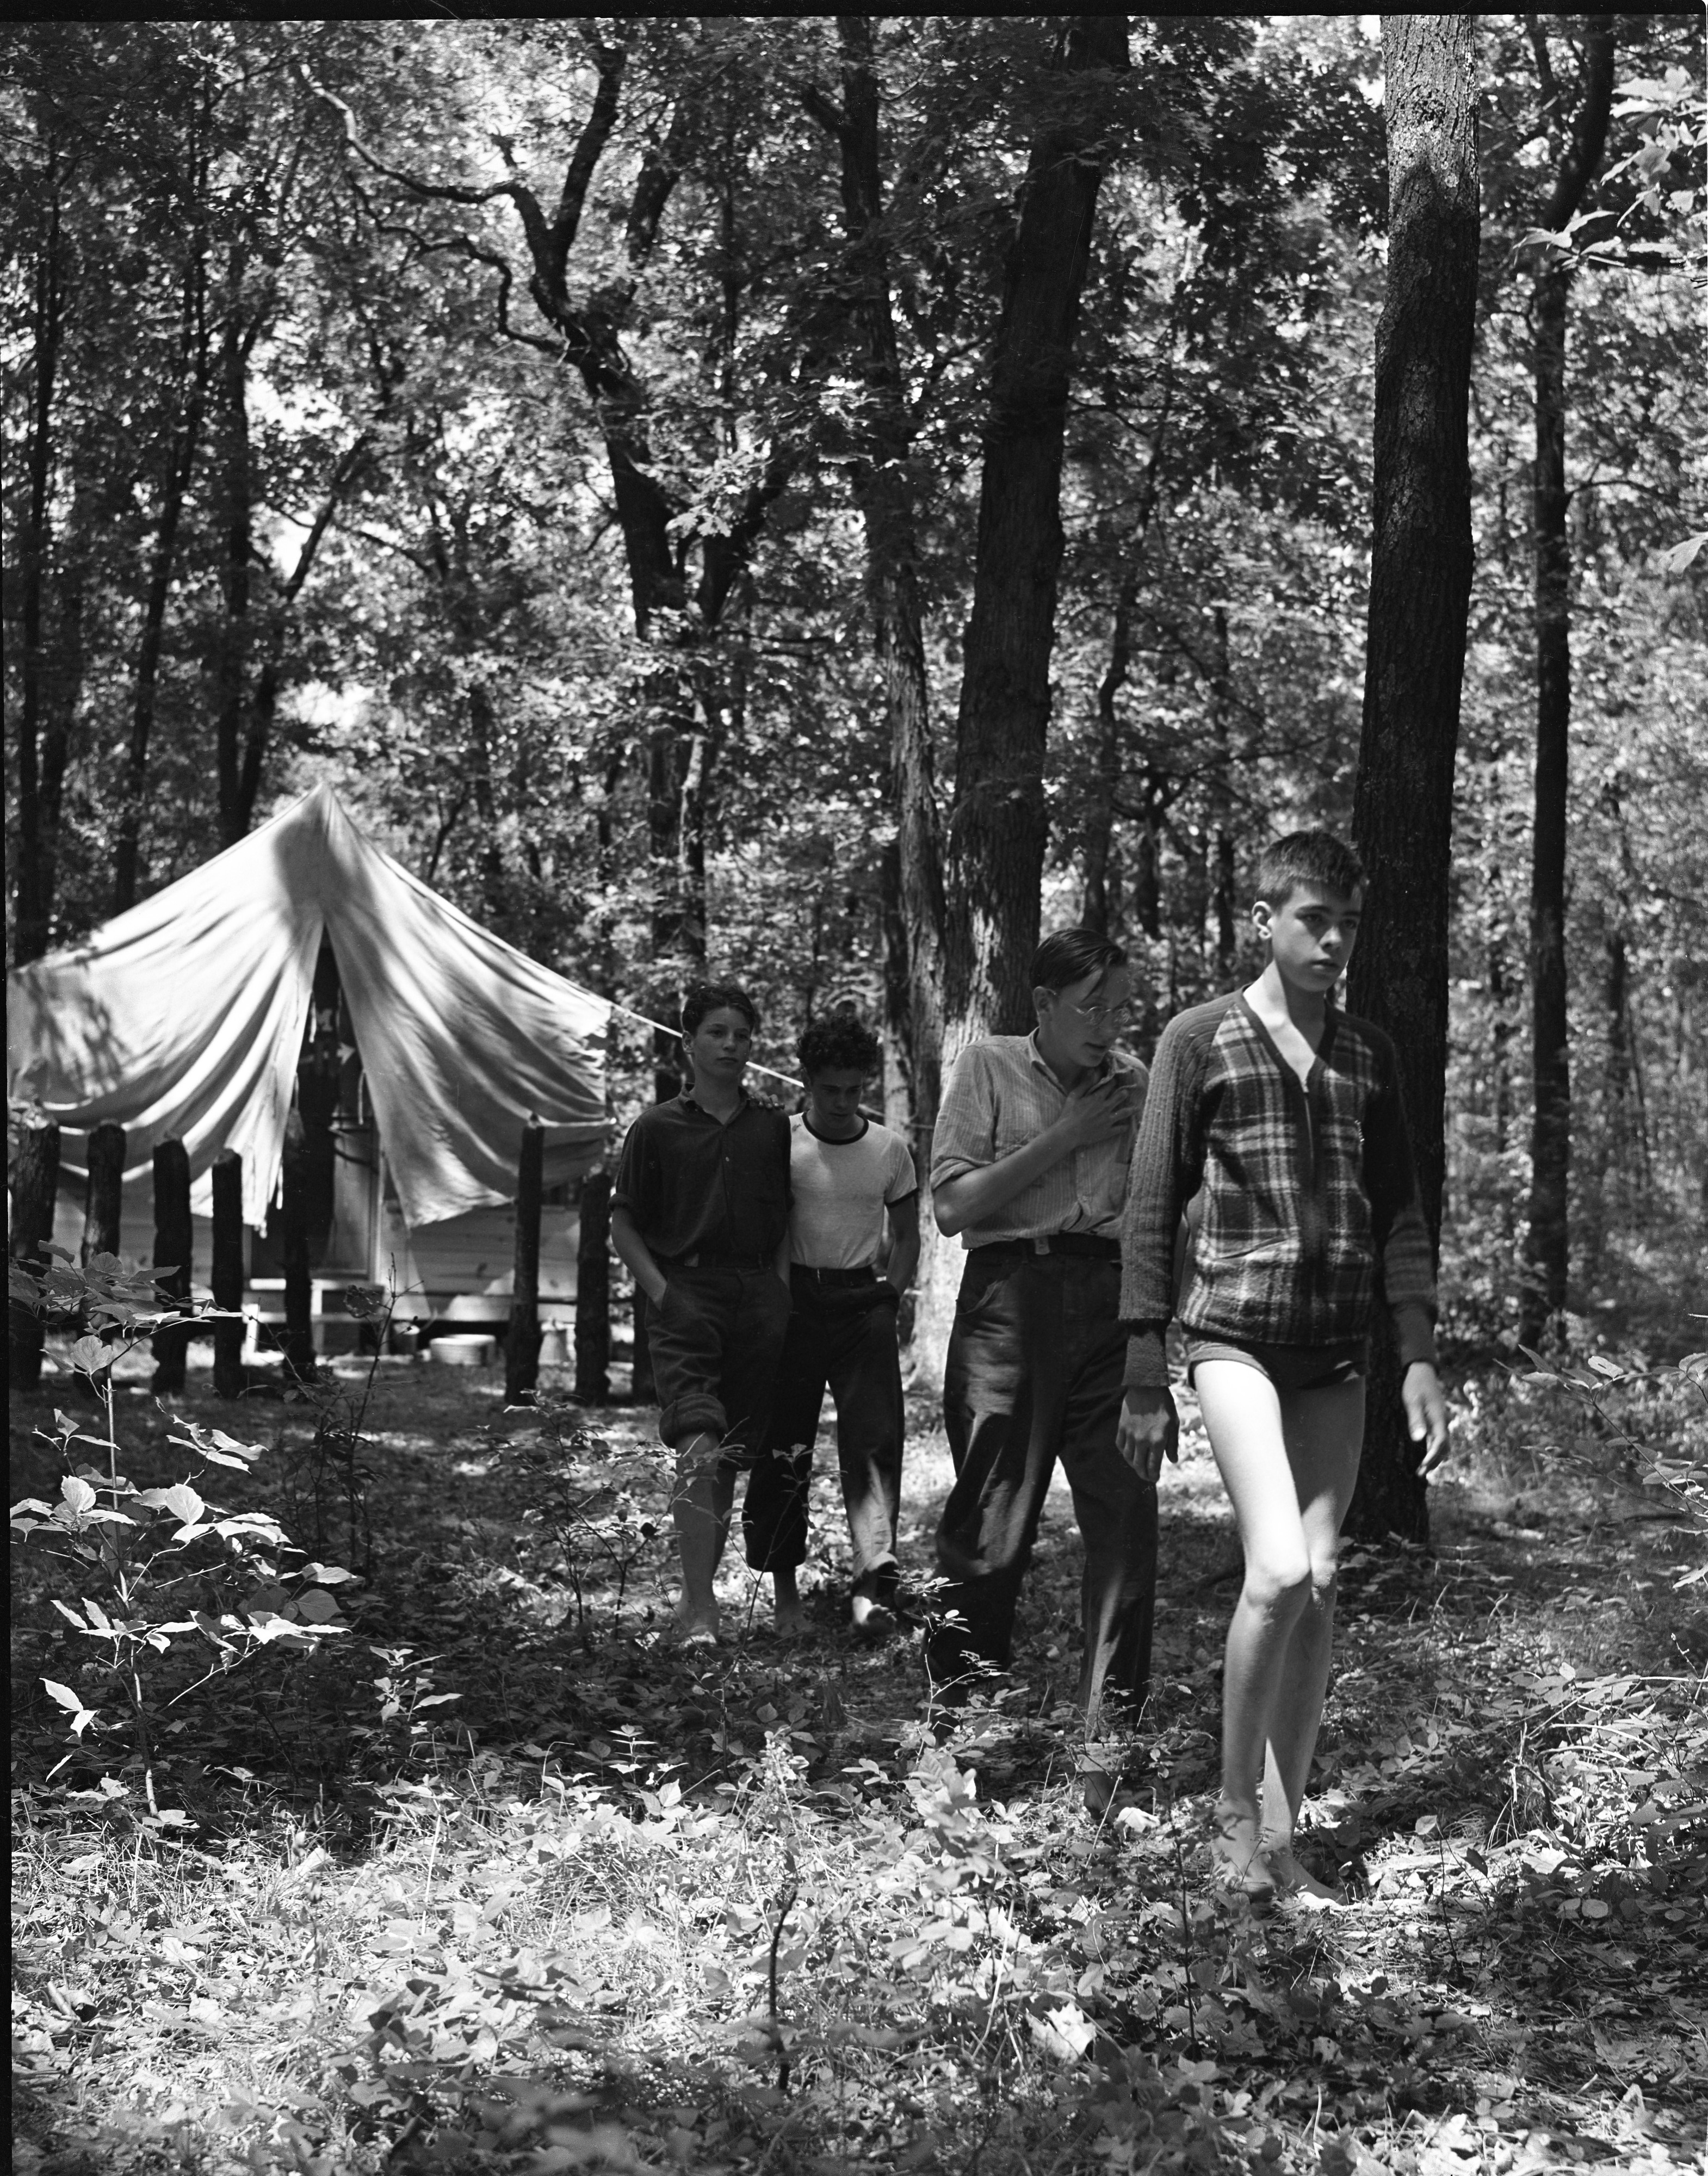 Tent And Campers At The University Of Michigan's Fresh Air Camp, July 1939 image